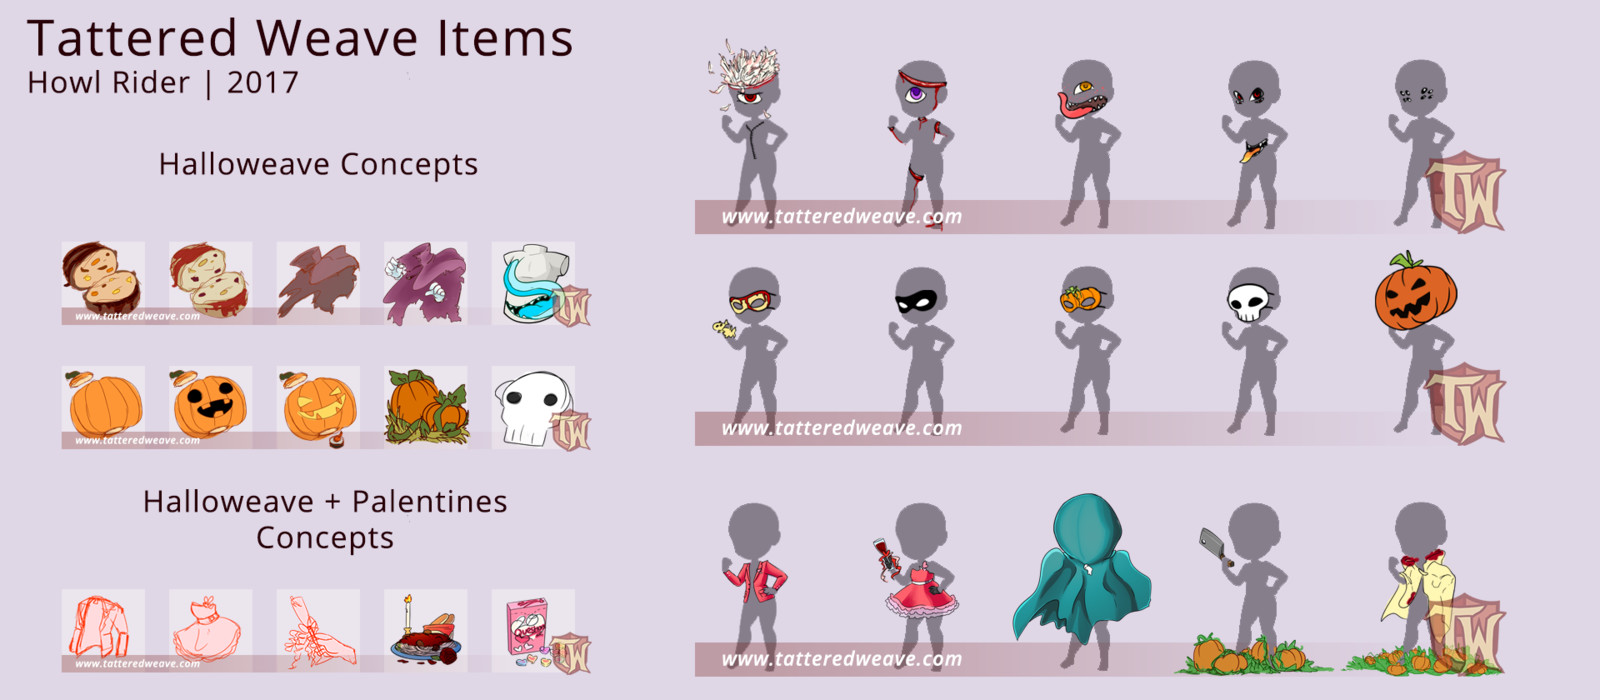 Concepts for items